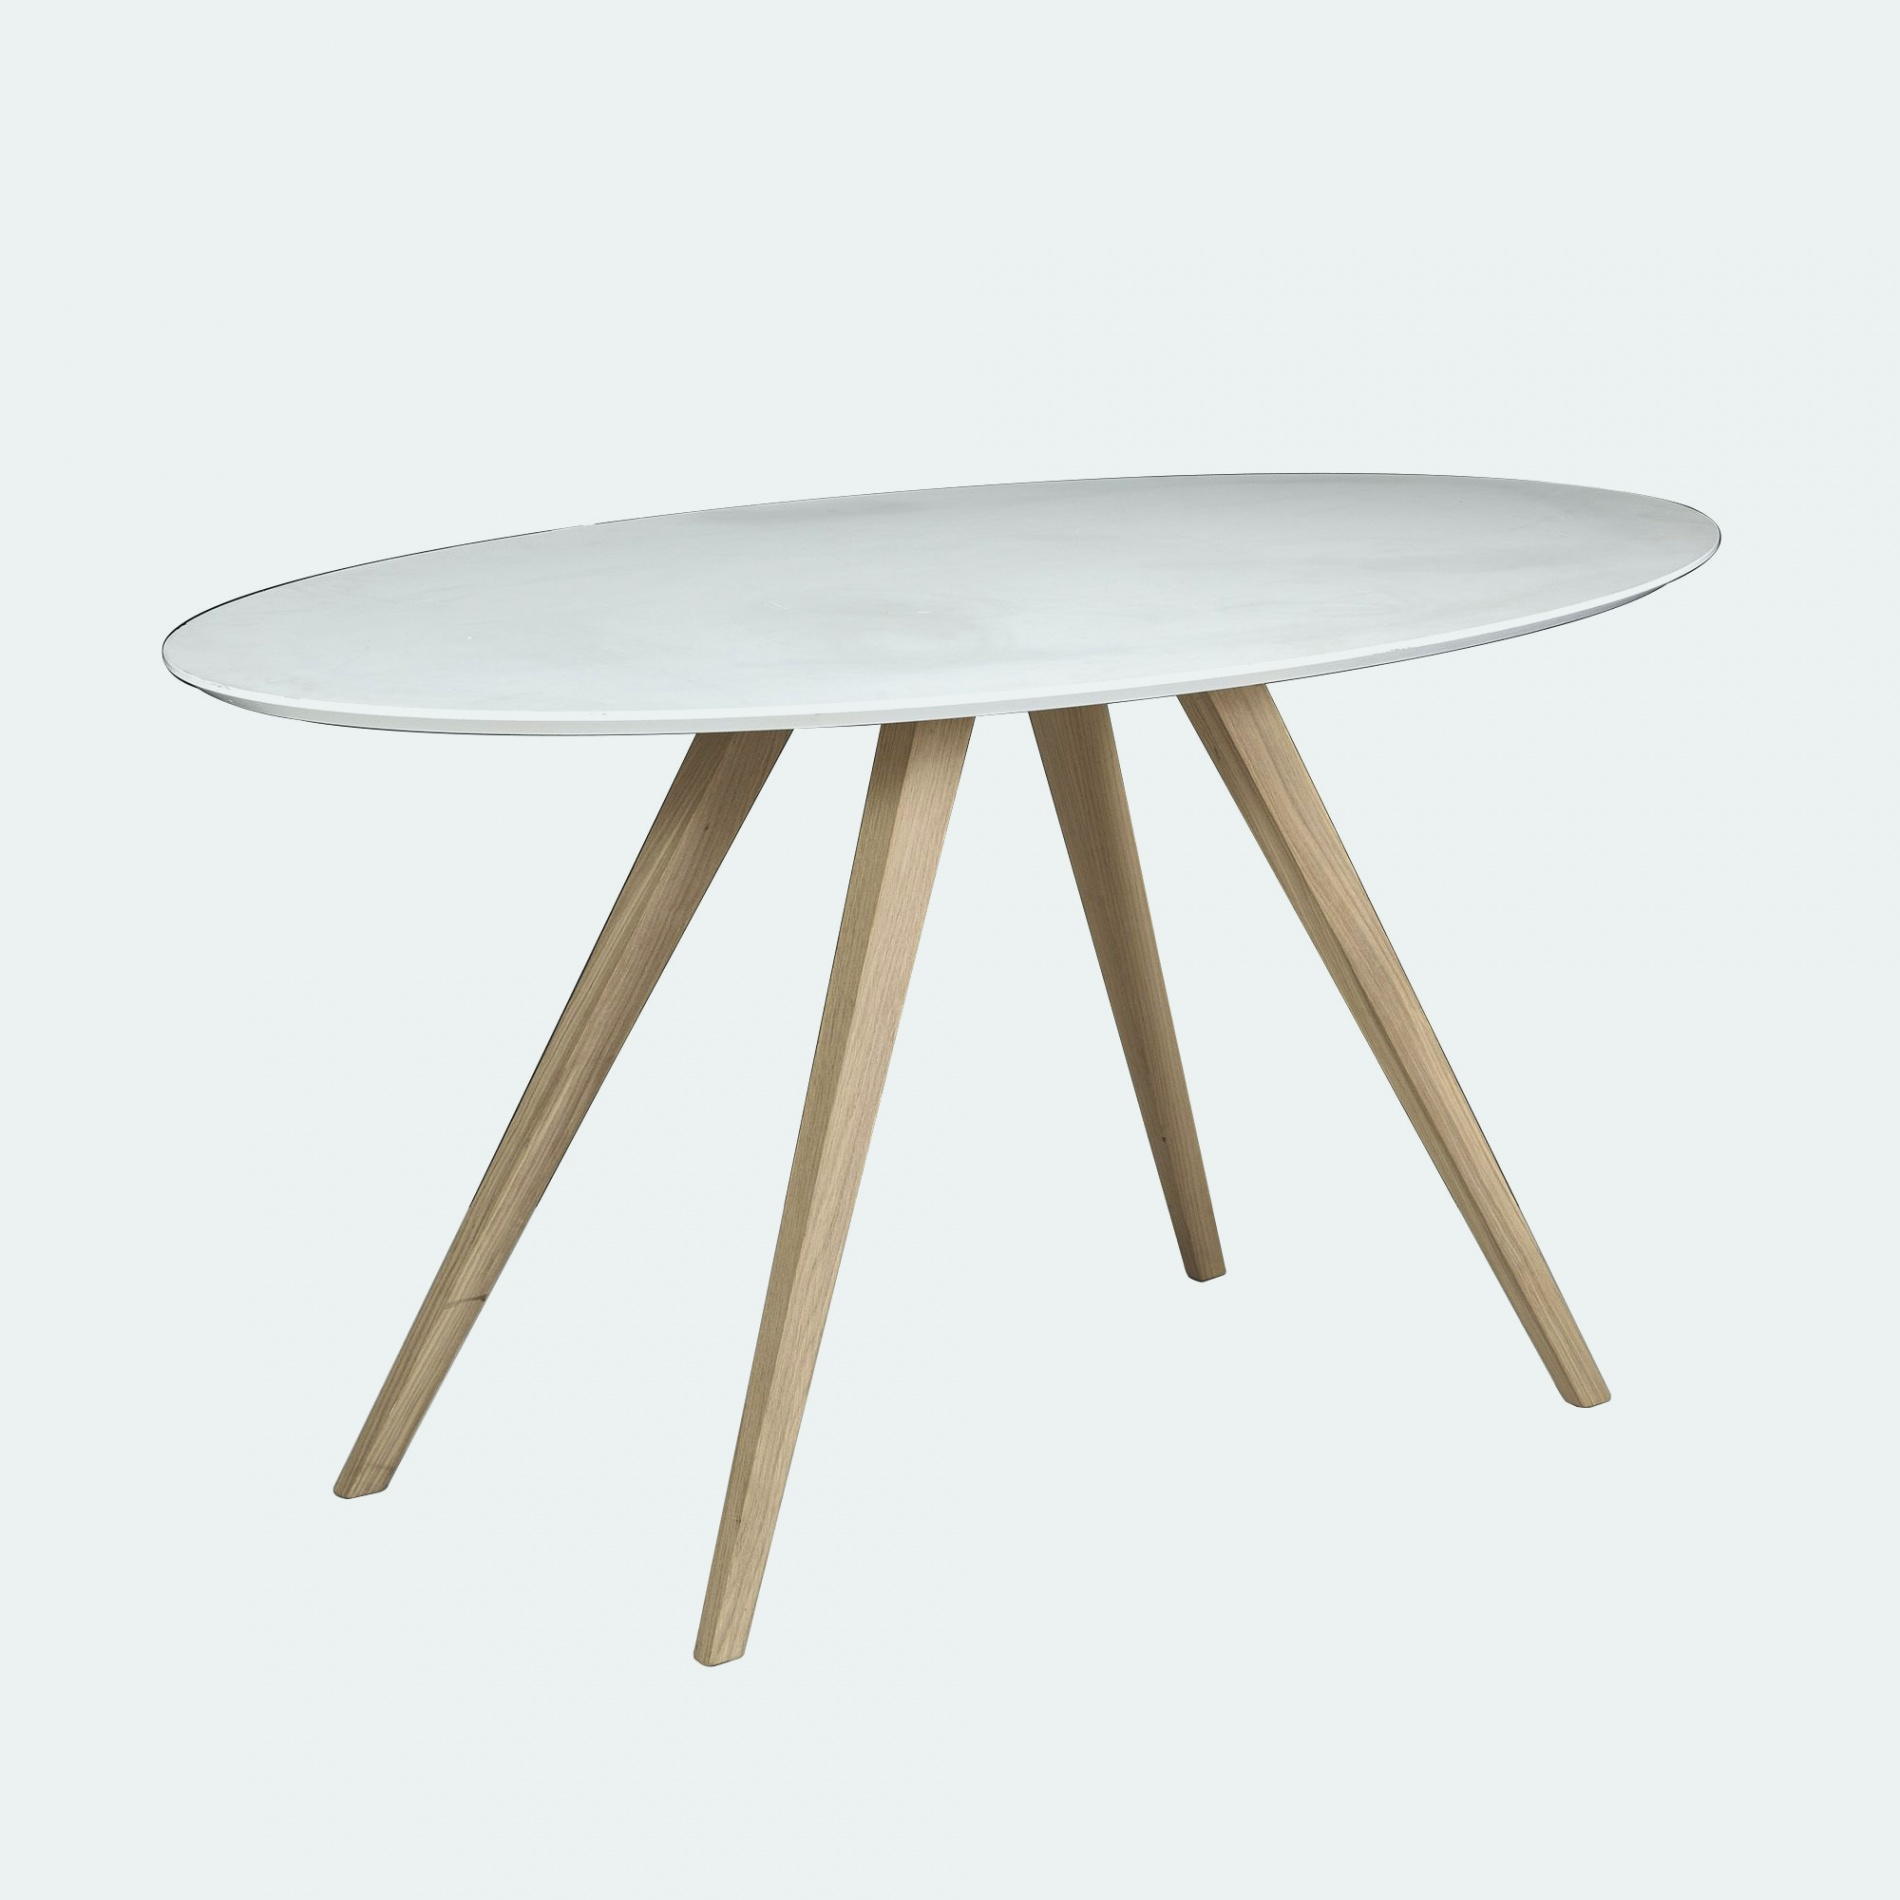 Keter Salon De Jardin Grande Table Basse Design élégant Grande